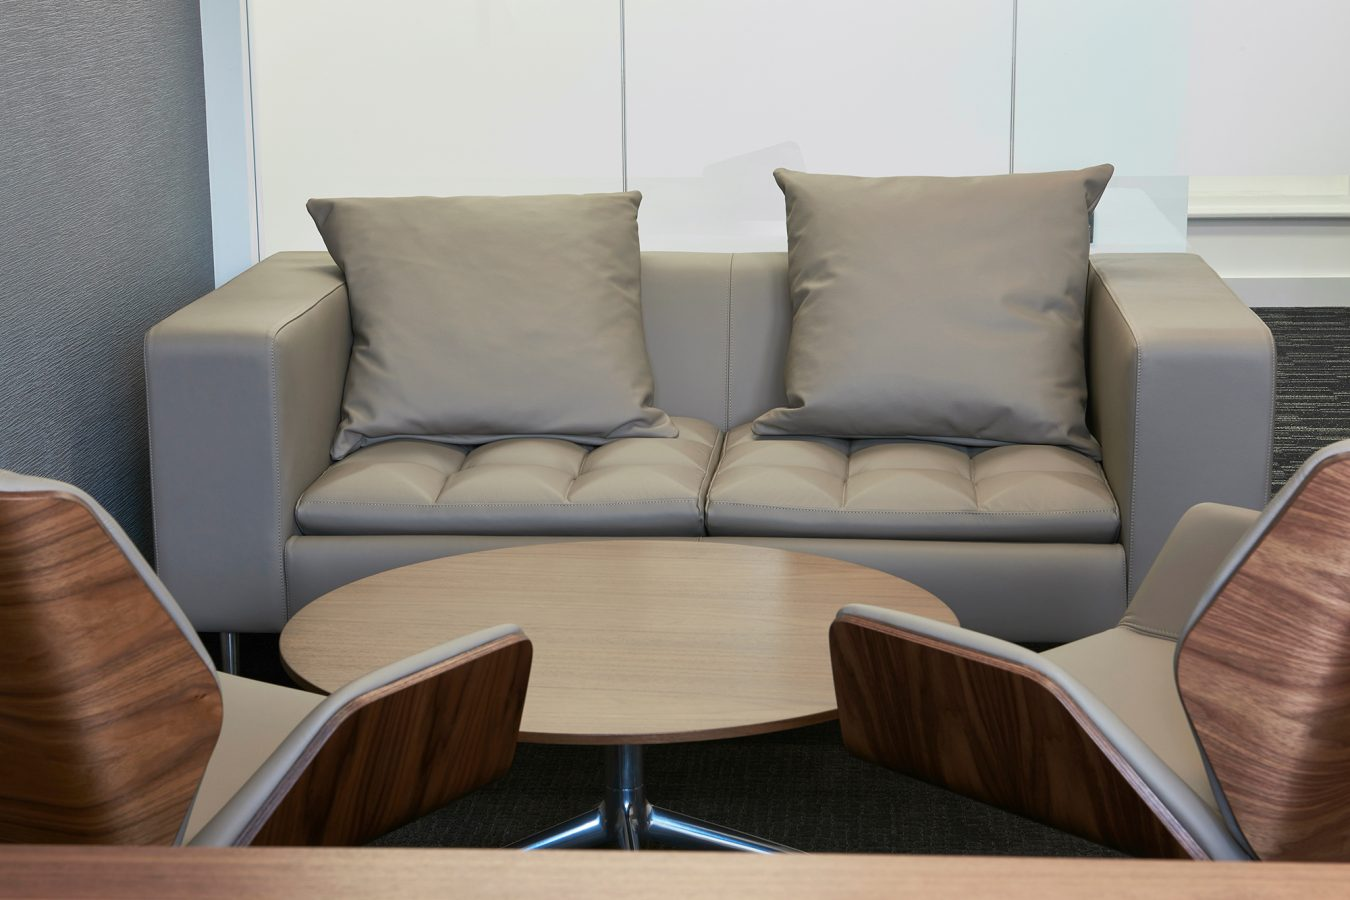 Leather couch and pillows for office design in nude colour, near London.